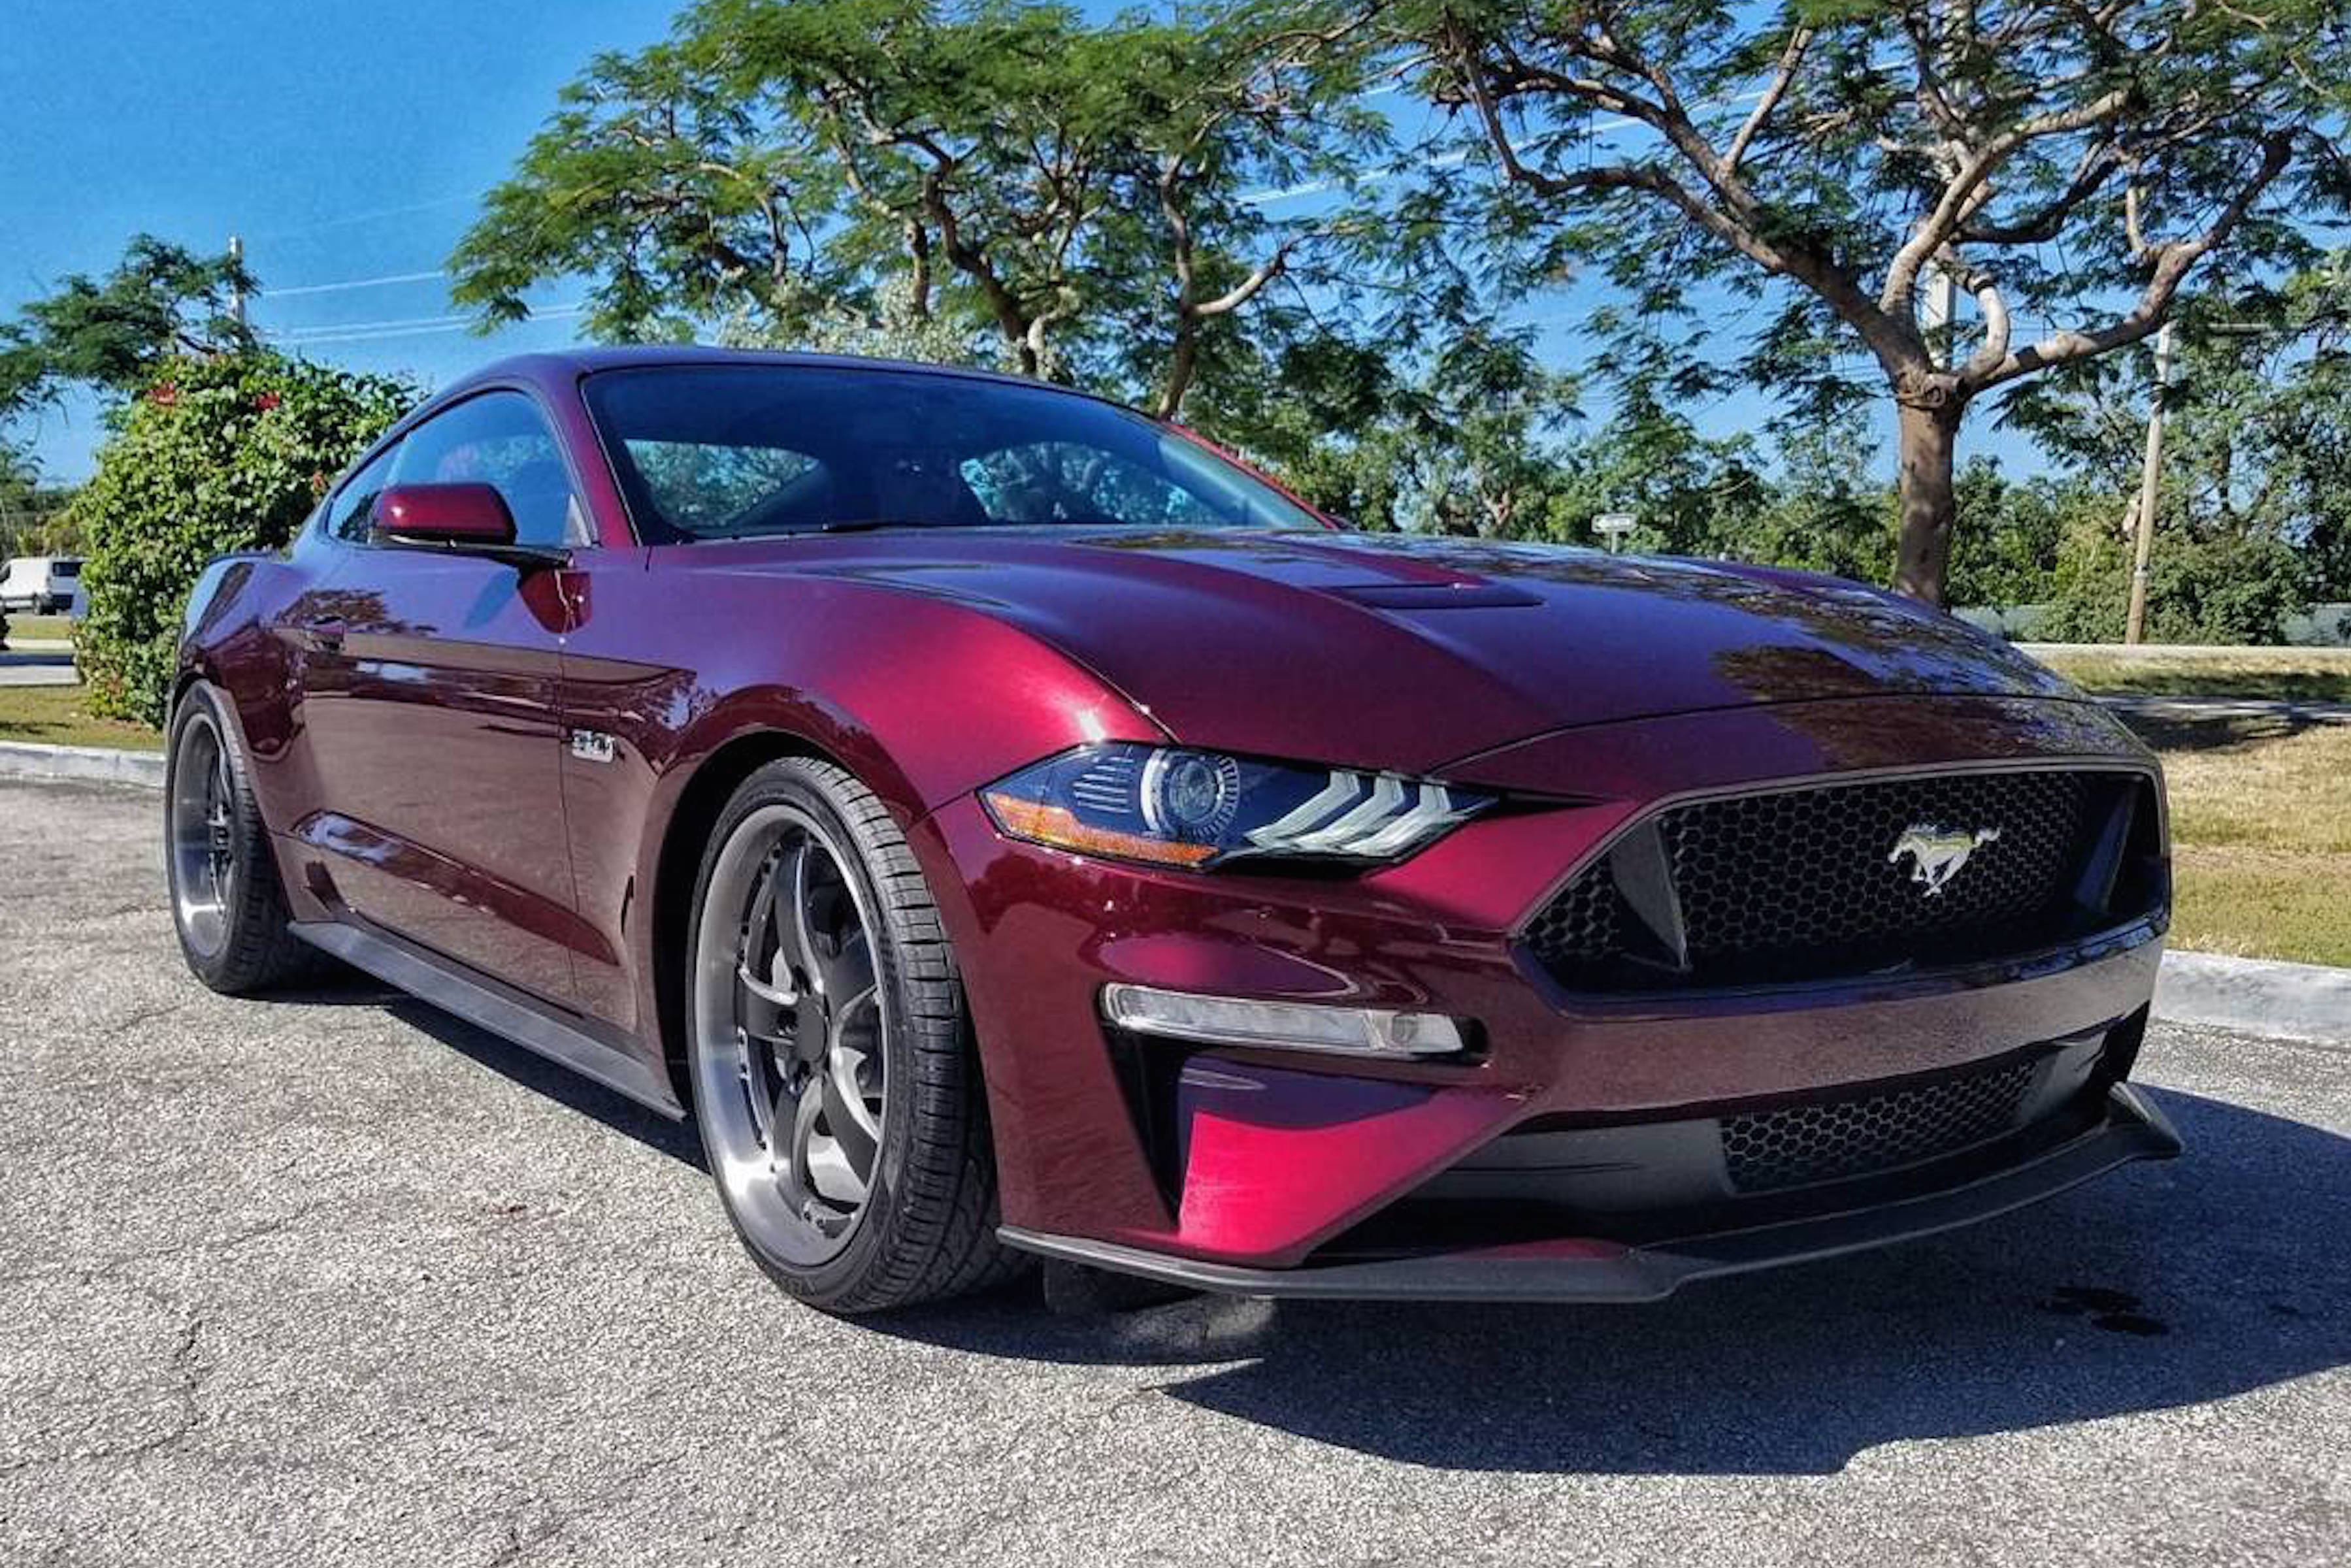 Blown 2018 Mustang Lowers Quarter-Mile Record